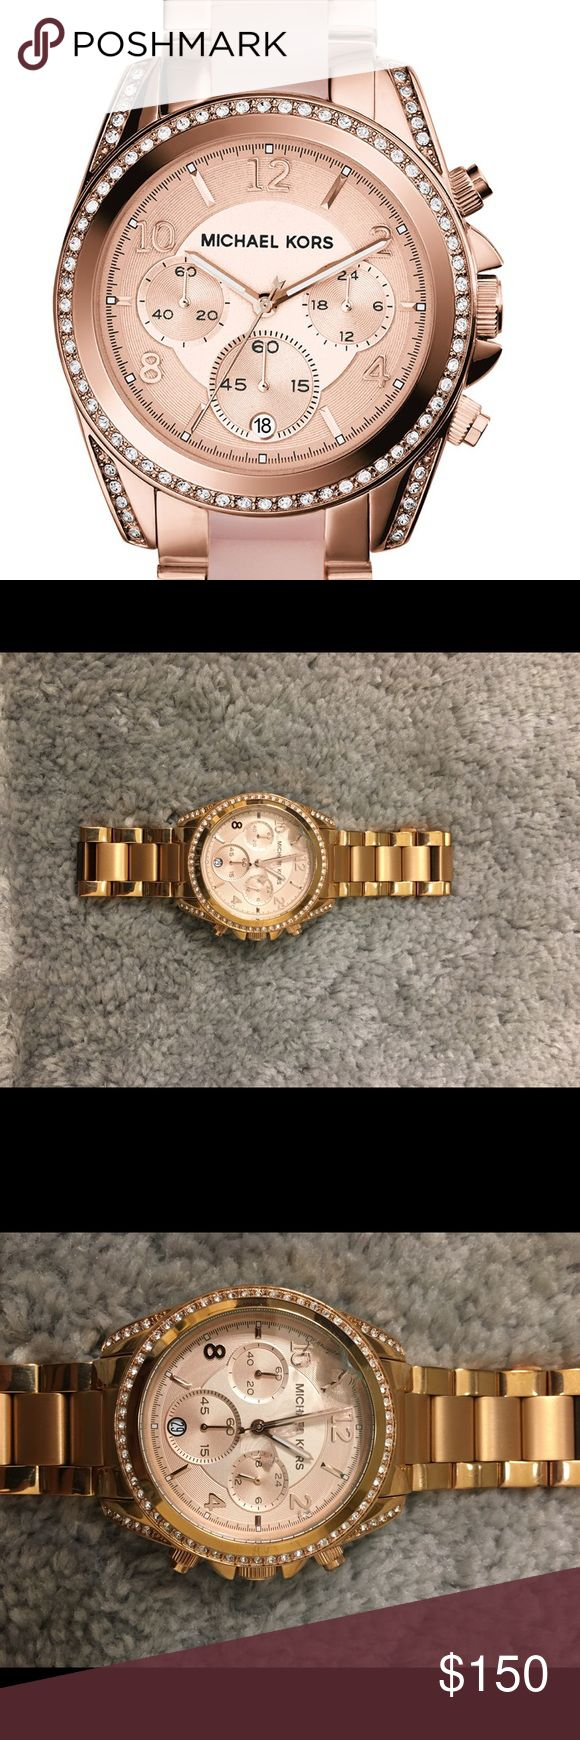 Michael Kors Watch Rose gold stainless steal chronographic Michael Kors watch. Has never been worn but has a chip in the face (see pictures). It should cost roughly $25-30 to fix. Other than that, it is in perfect condition. Michael Kors Accessories Watches